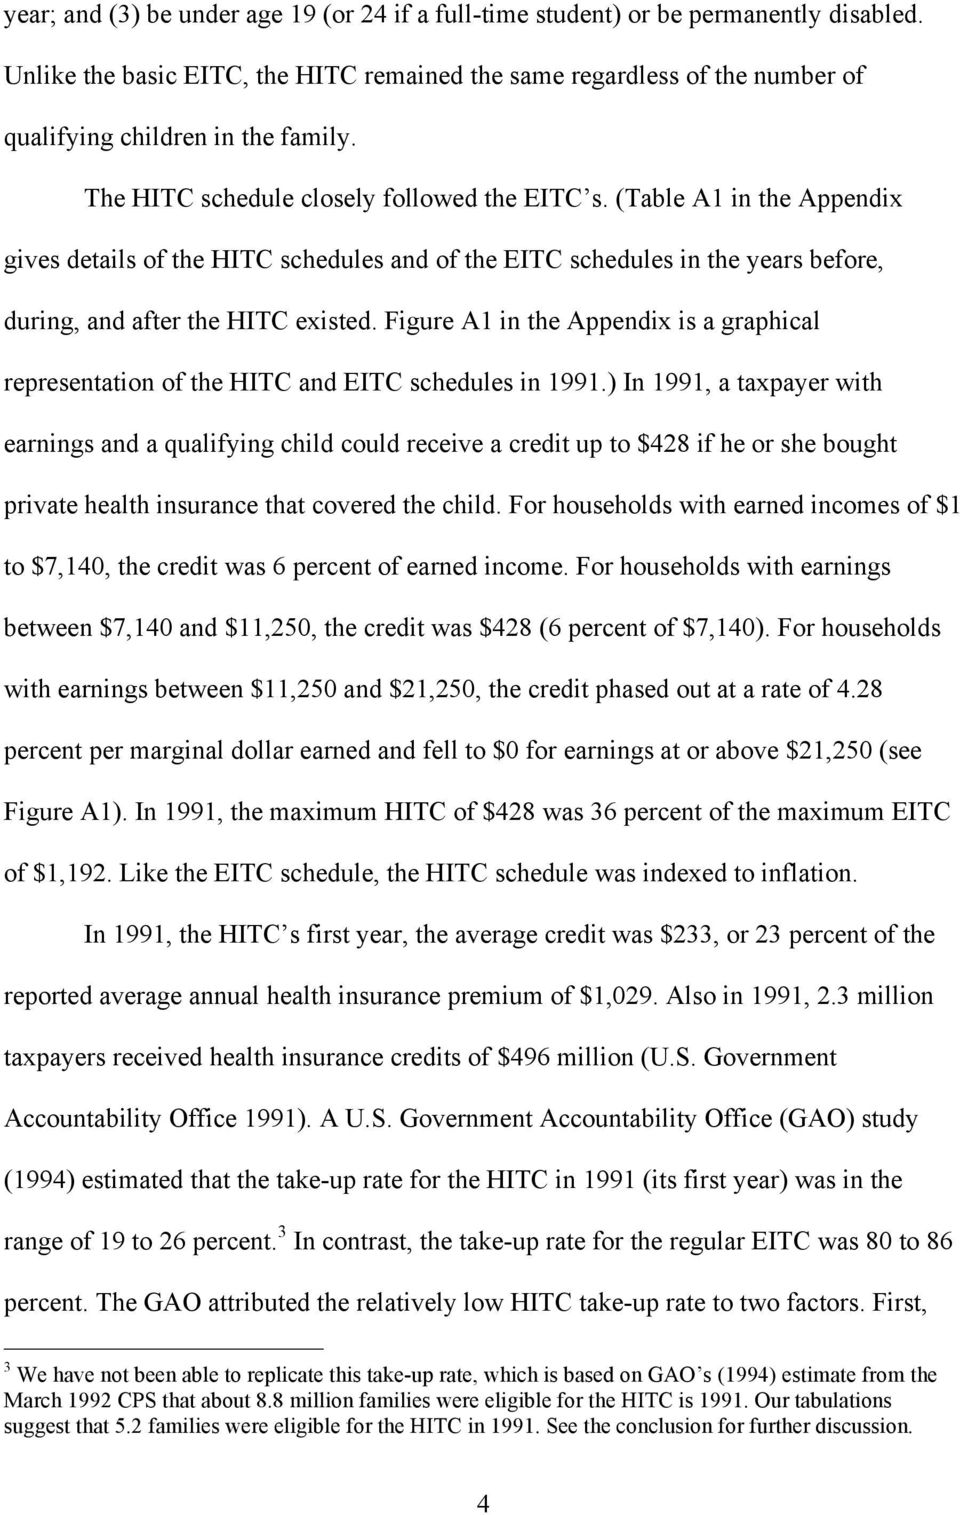 (Table A1 in the Appendix gives details of the HITC schedules and of the EITC schedules in the years before, during, and after the HITC existed.